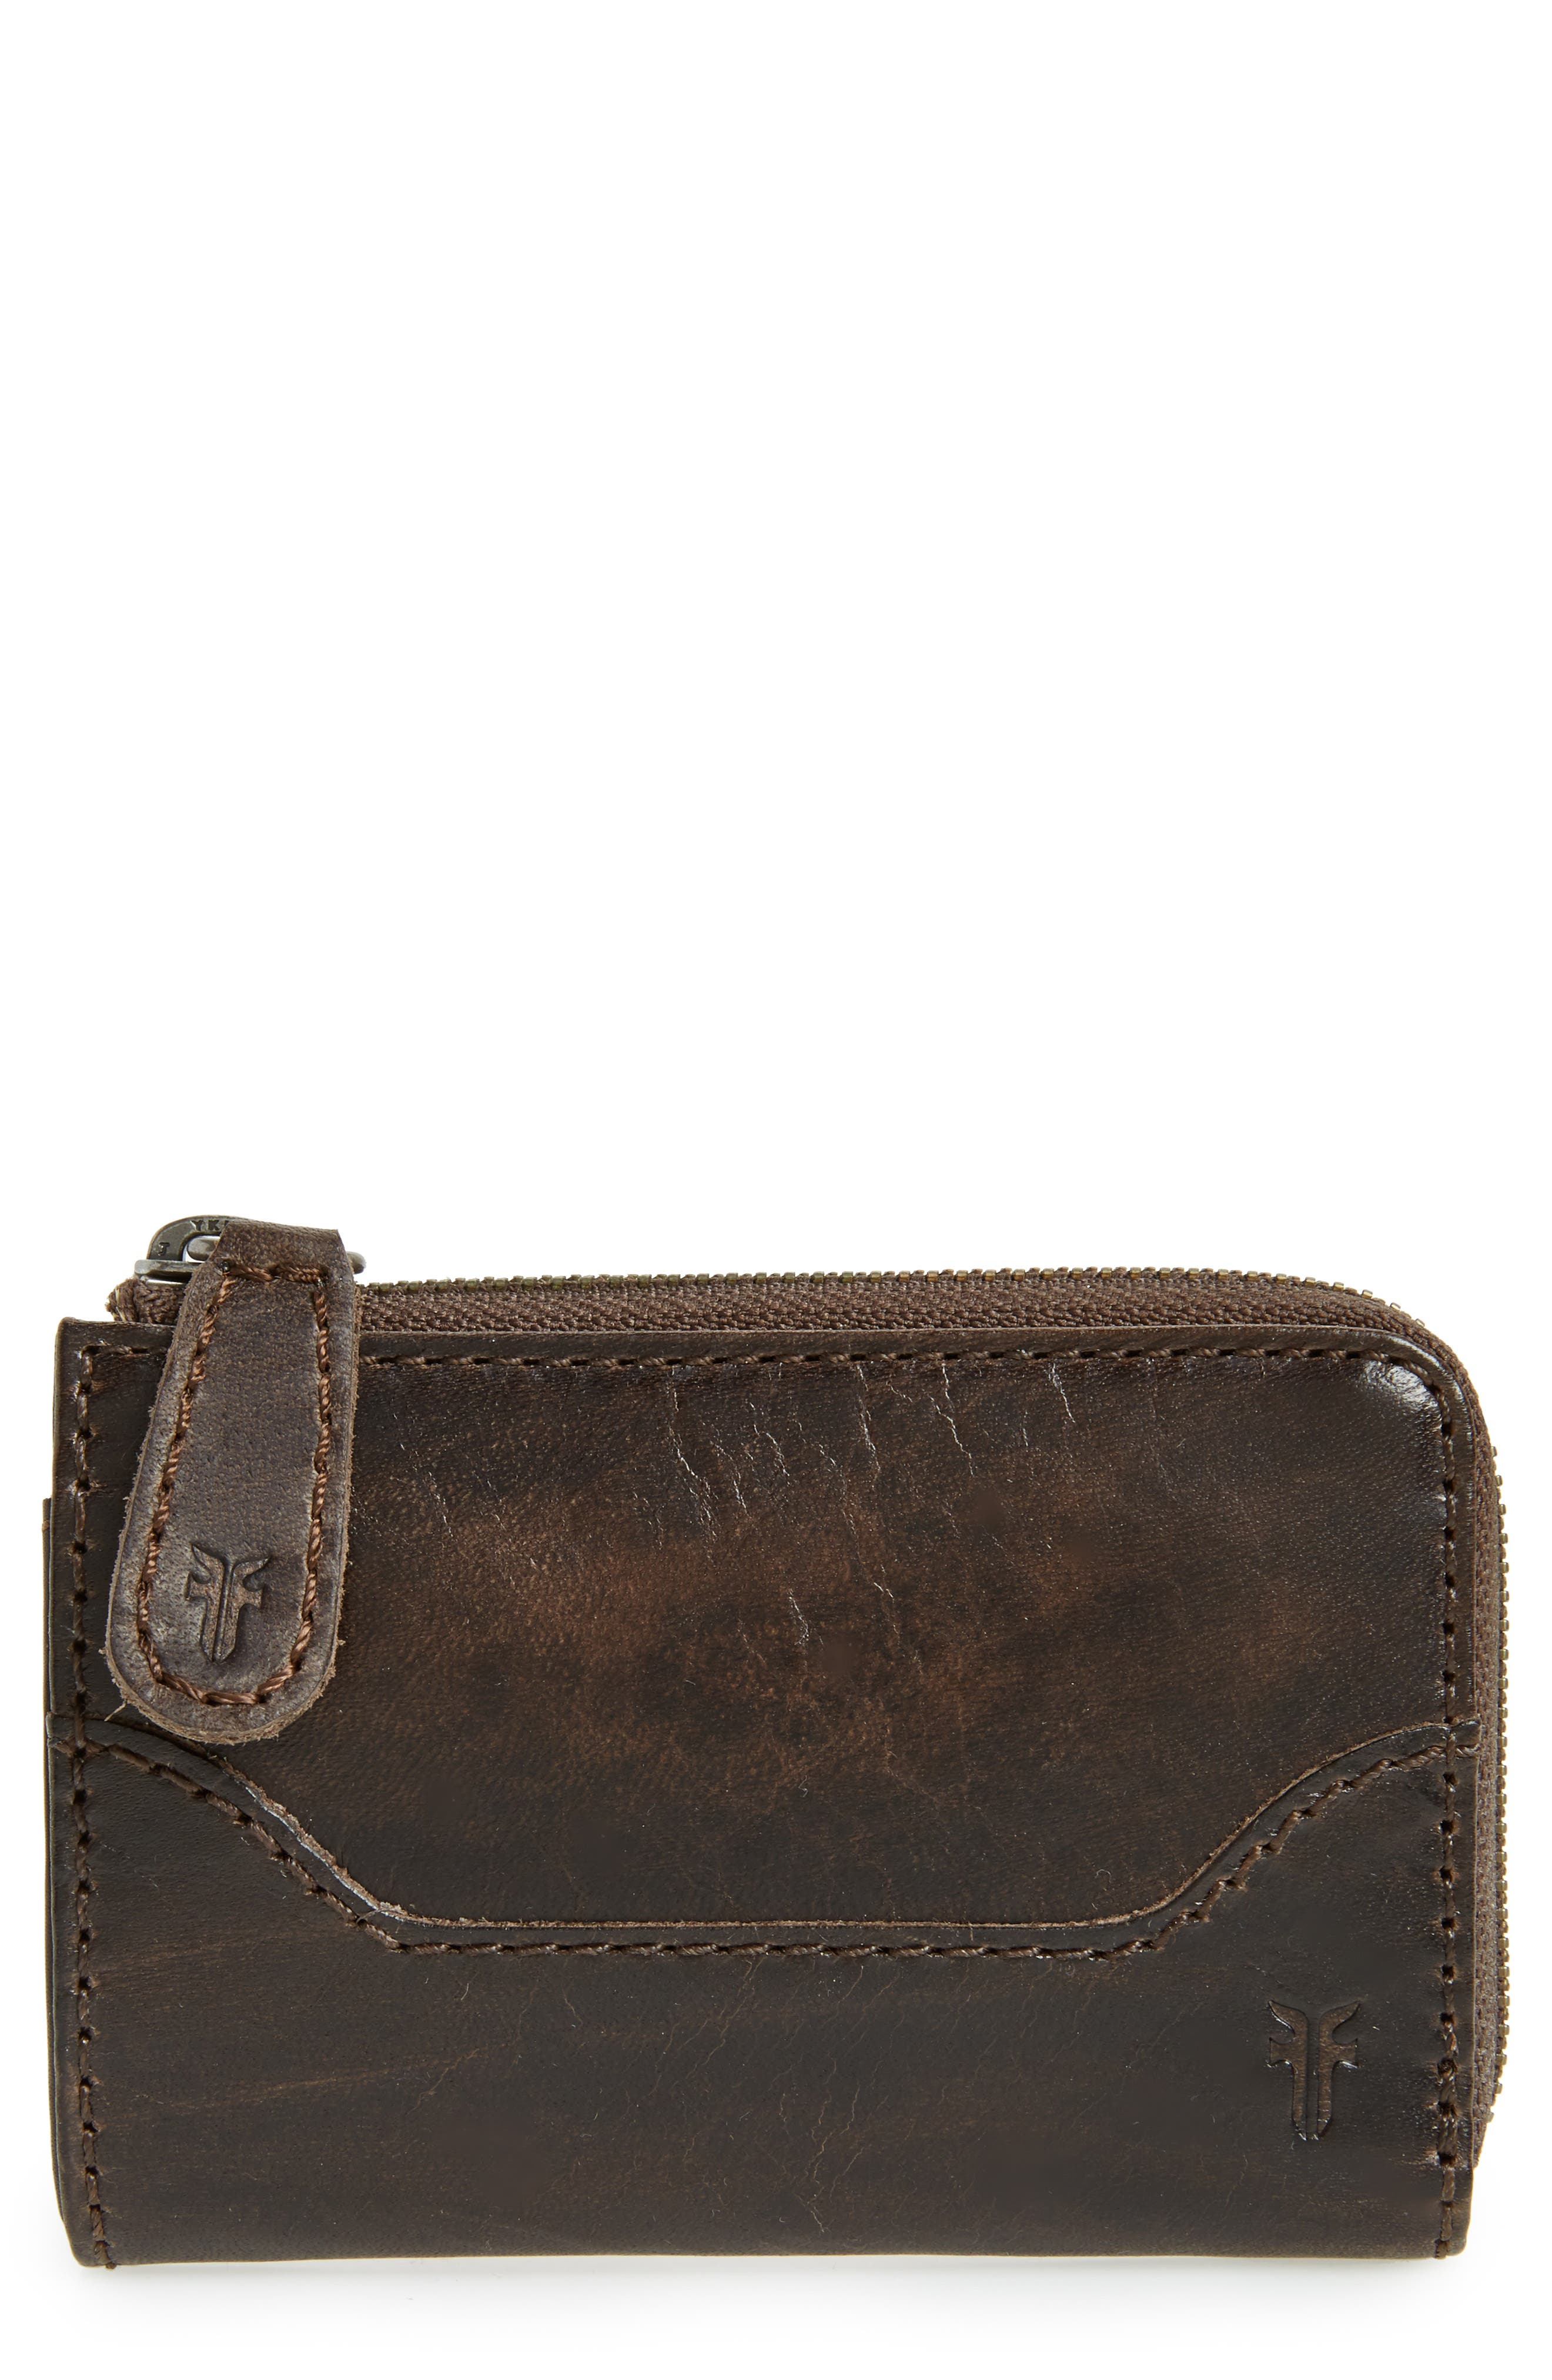 Small Melissa Leather Zip Wallet,                             Main thumbnail 1, color,                             203